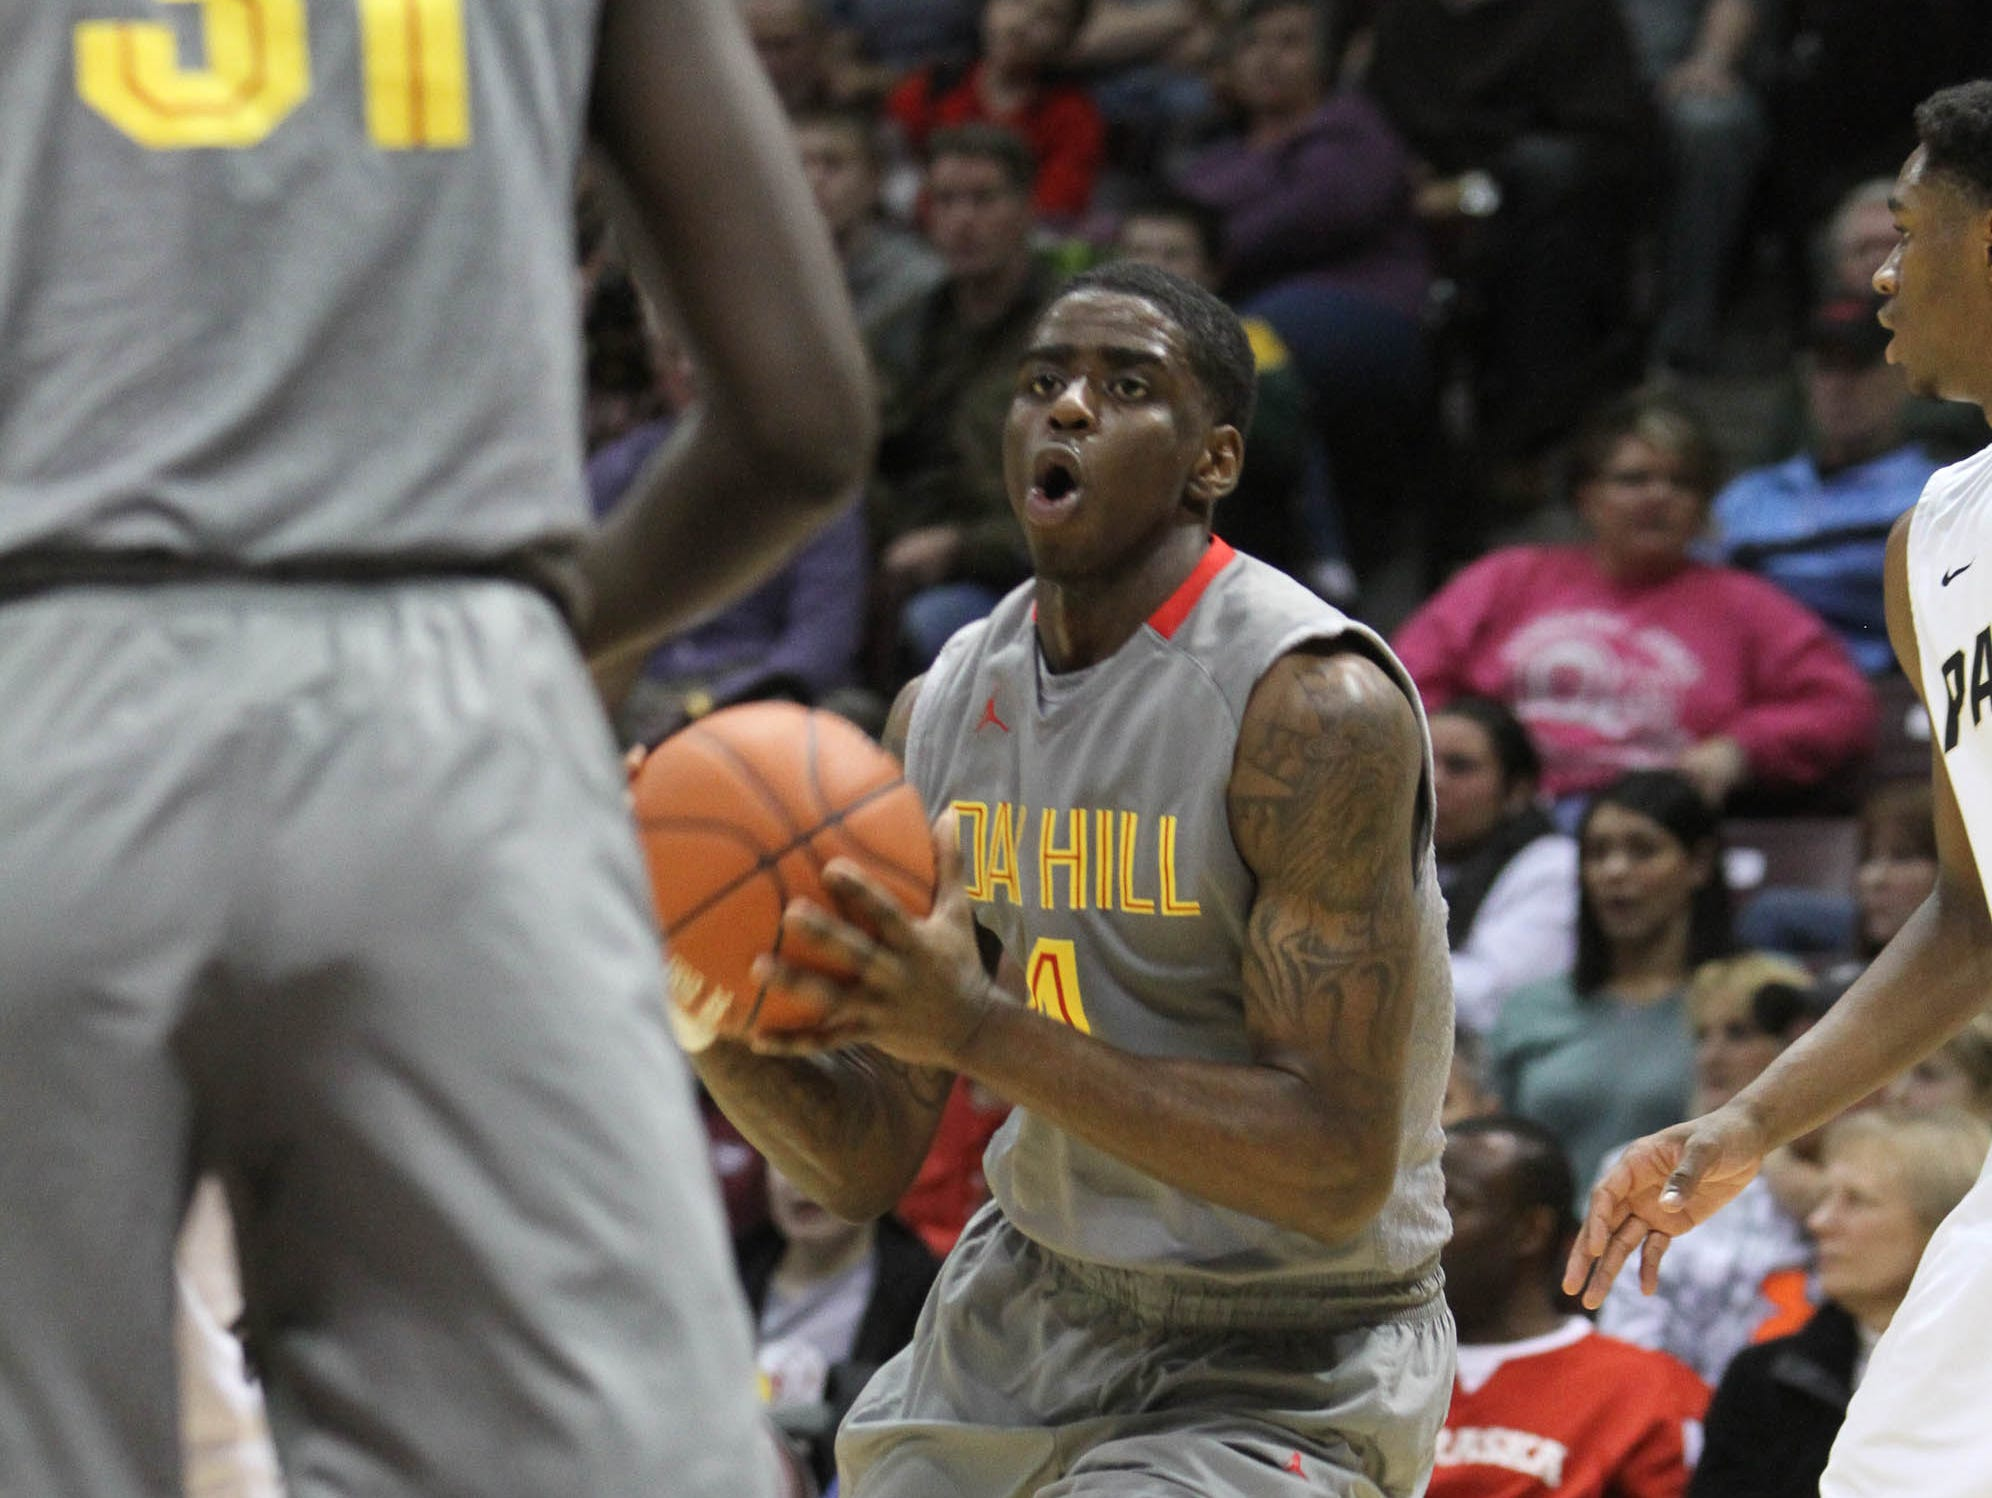 Oak Hill Academy's Dwayne Bacon went on to play at Florida State University upon graduating from Oak Hill in 2015.